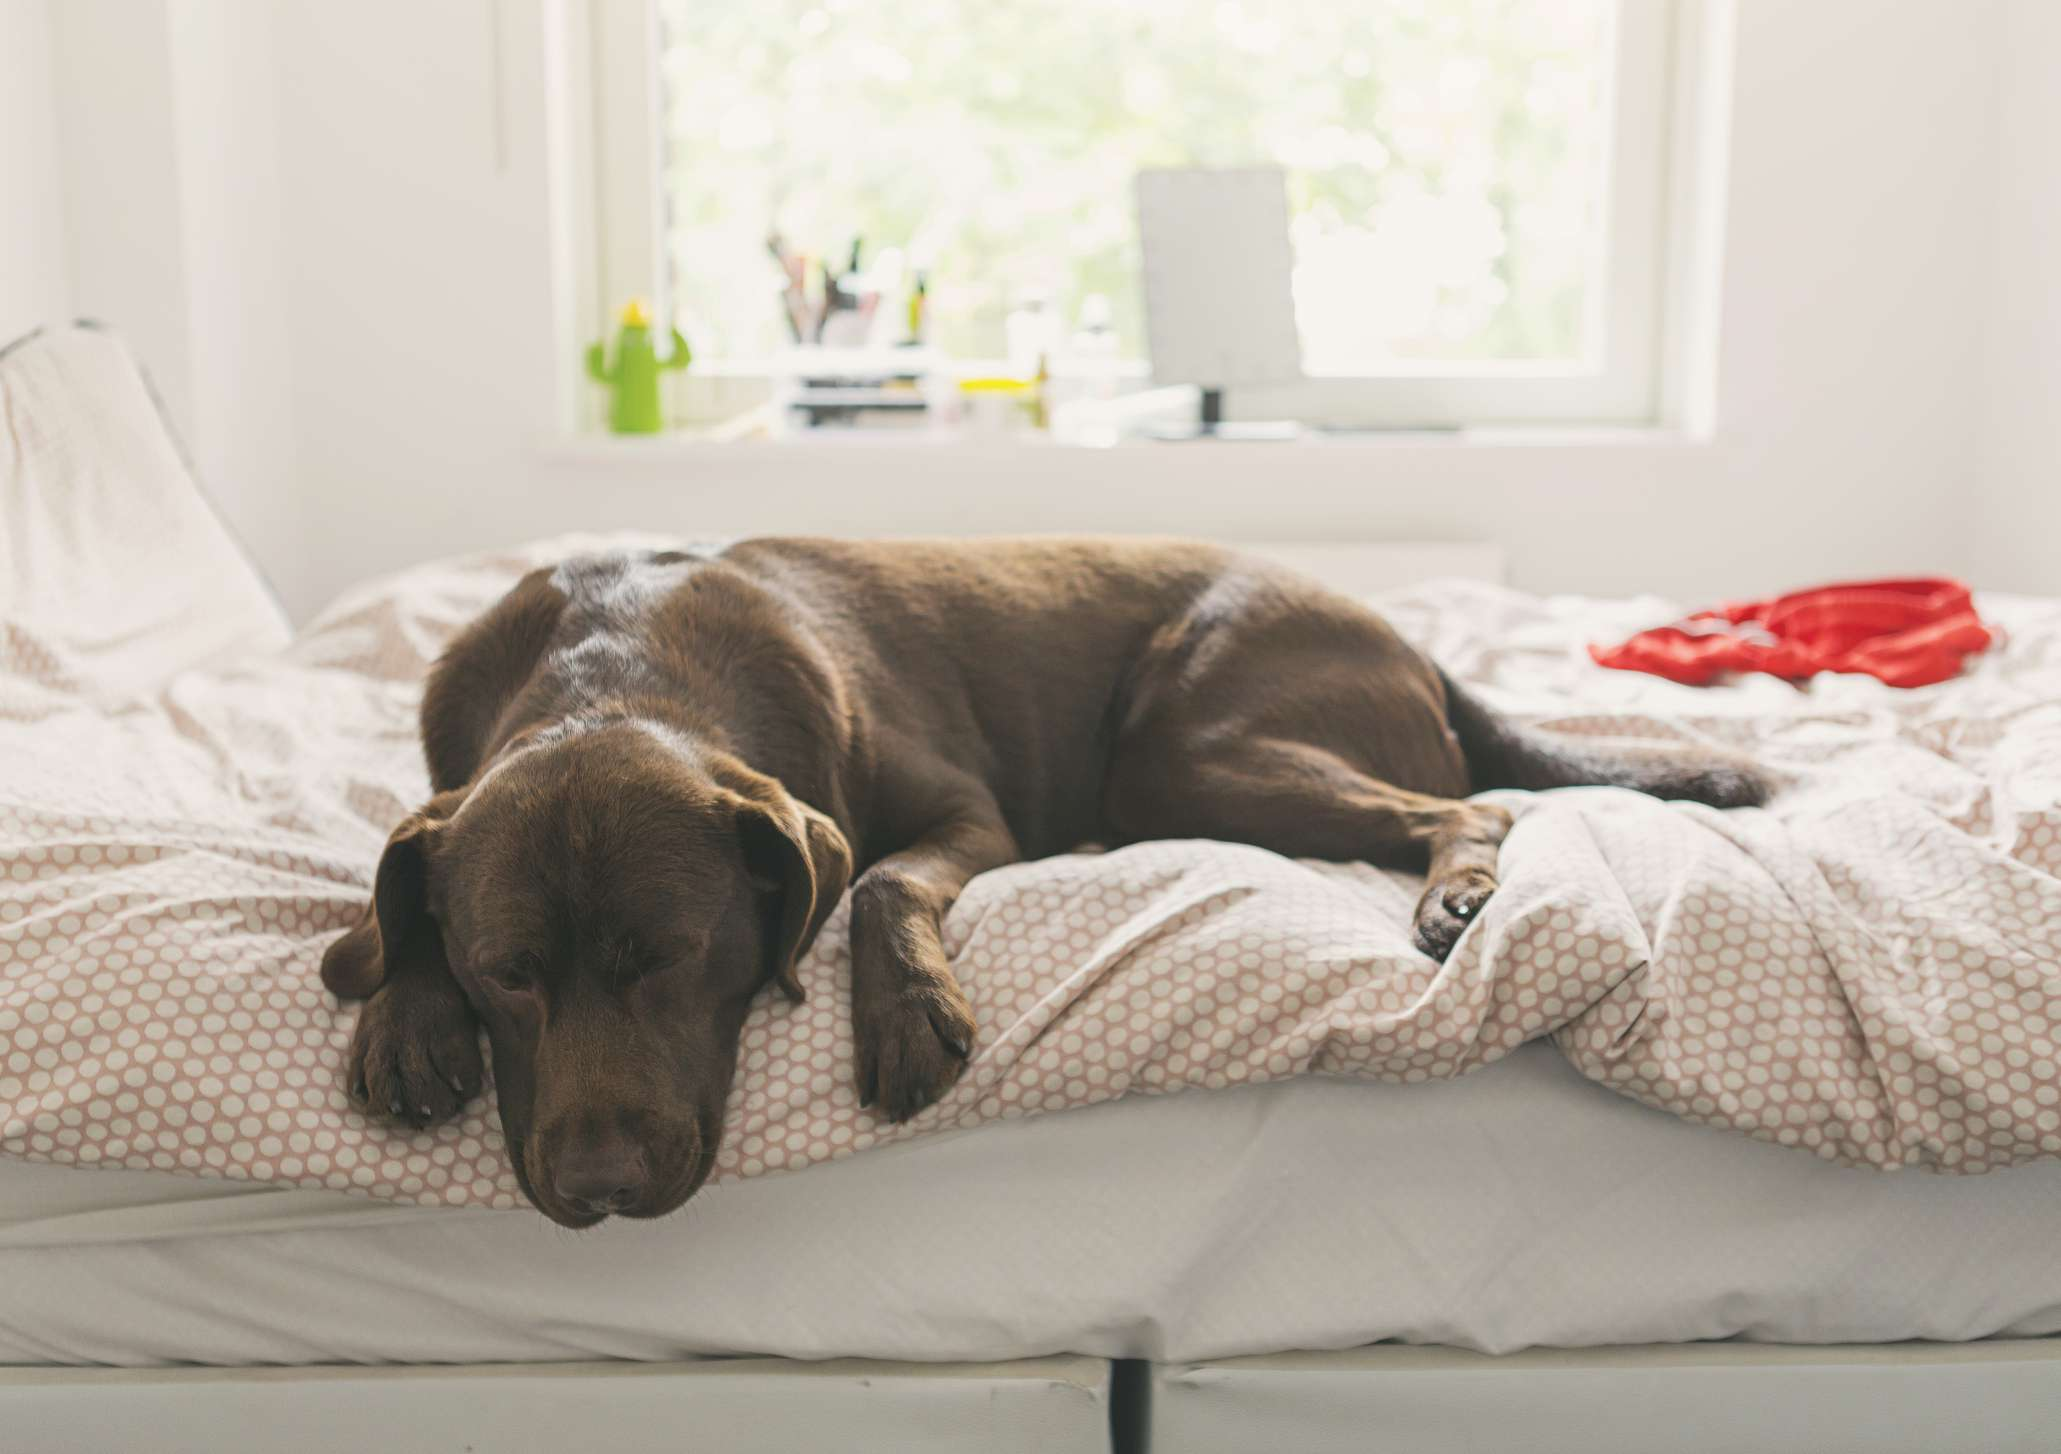 Dog sleeping on bed in clean room